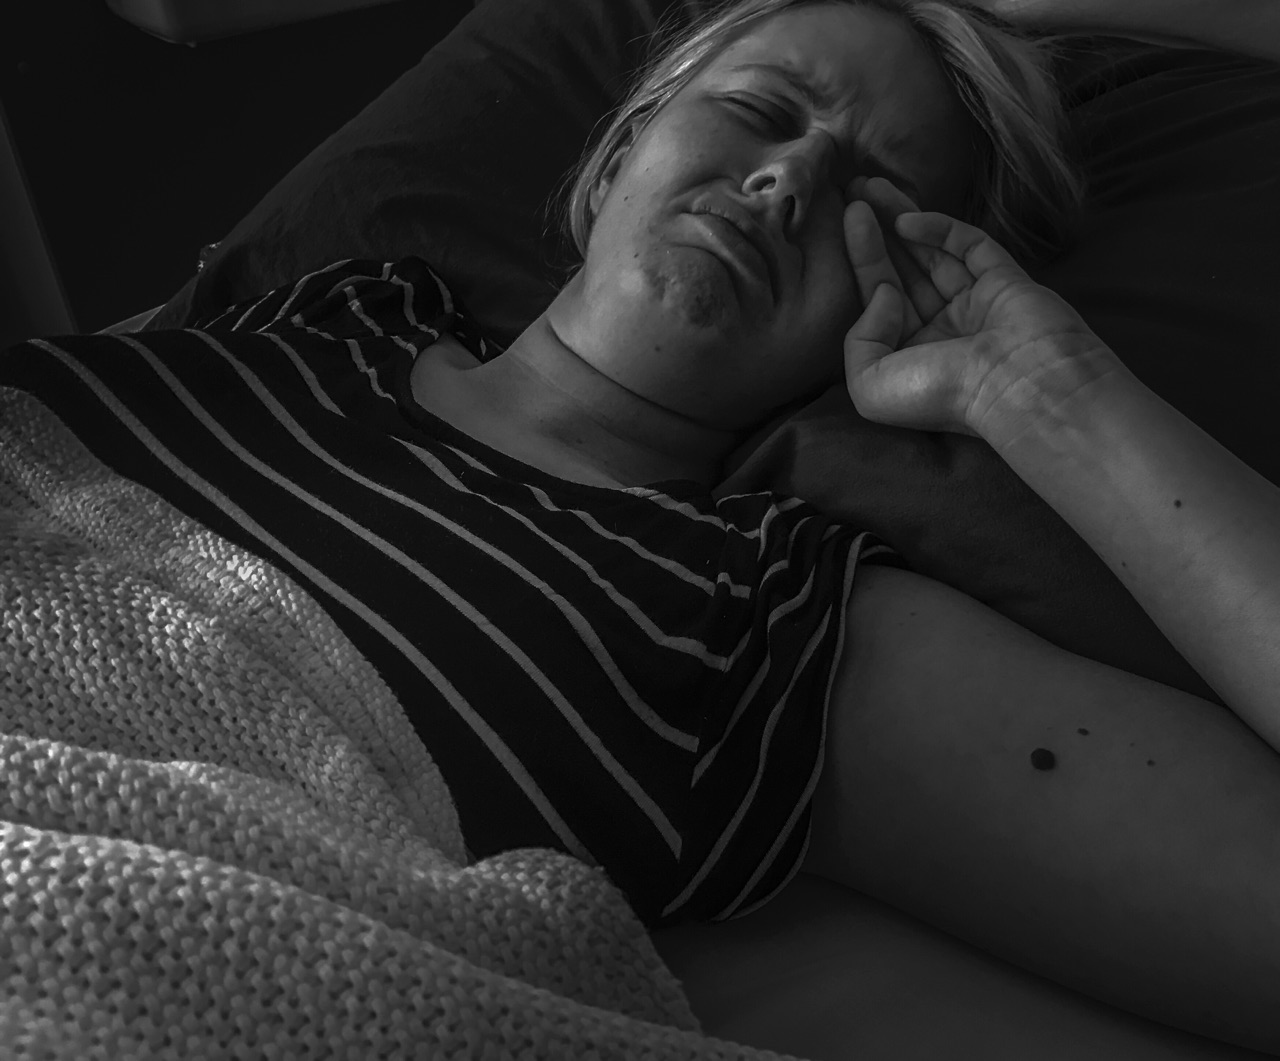 Though this isn't a pretty picture of my wife, it was a view I was met with on the weeks when her immune system hit rock bottom. In the midst of the pain was a sense of community in hospital, I can't begin to describe and I didn't feel the need to hide the reality of what we were going through, knowing it would be fine.